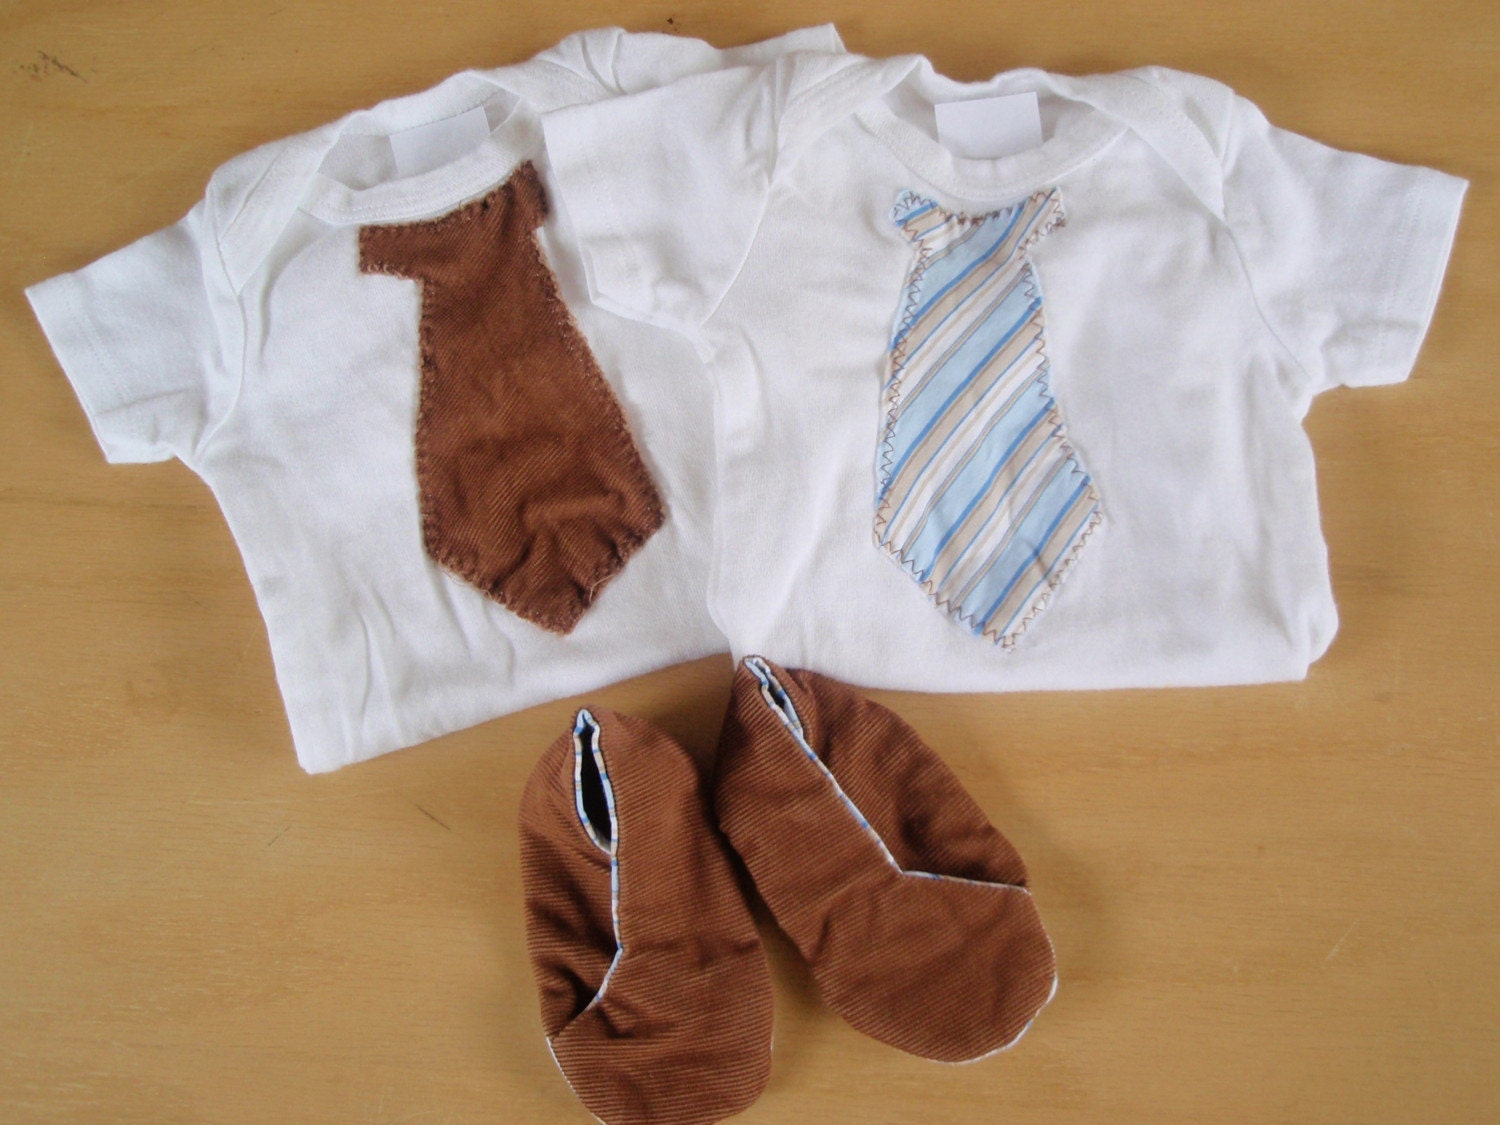 Brown corduroy and blue striped onesies with matching shoes set